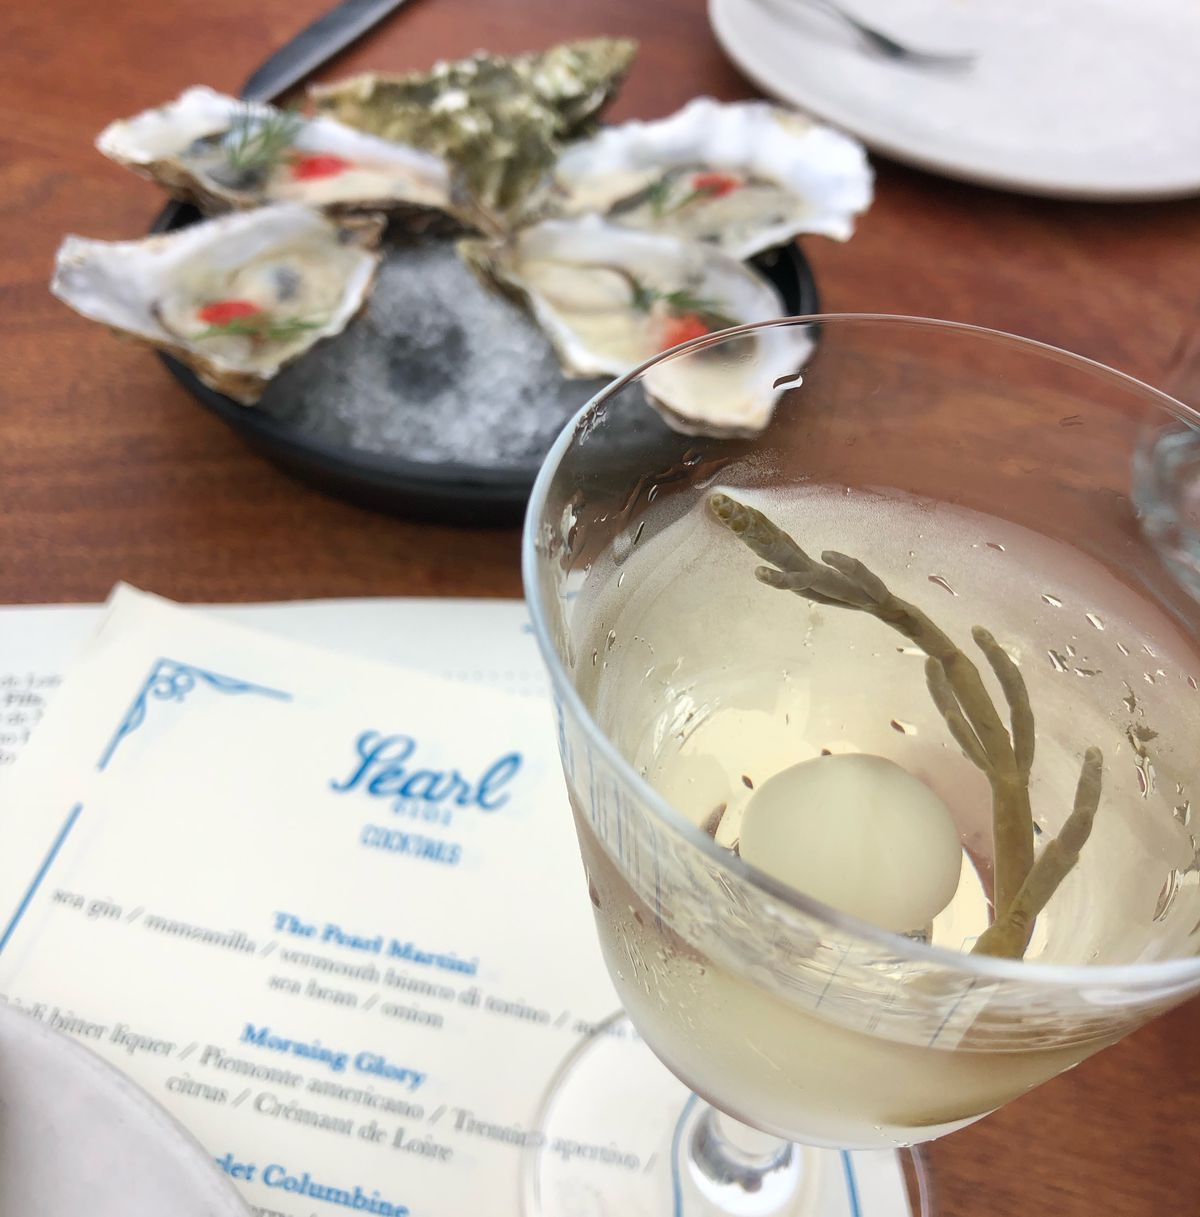 Martini from Pearl